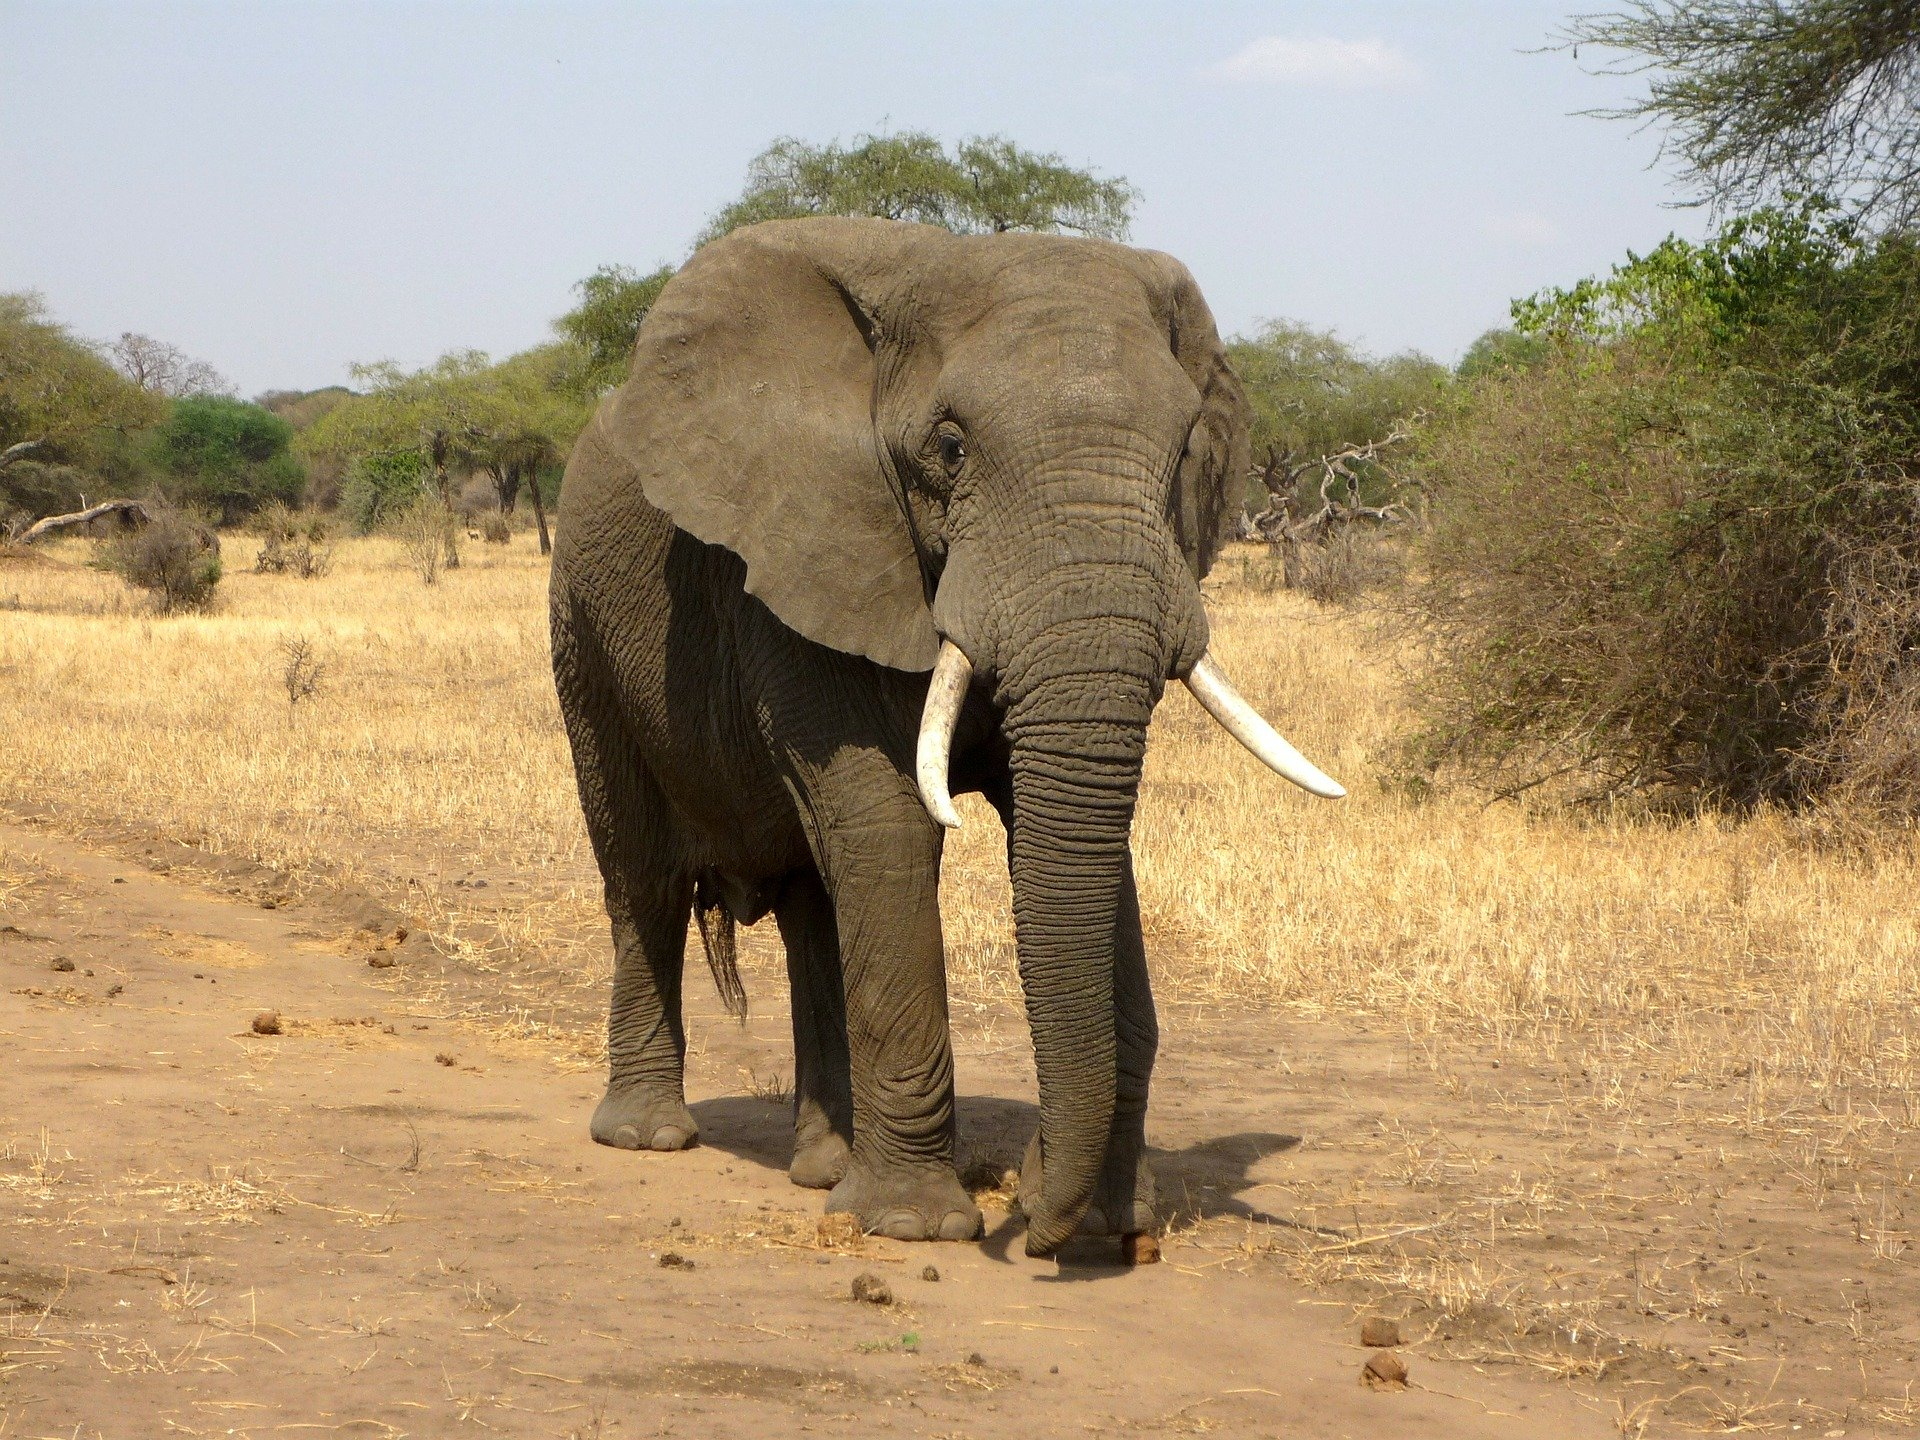 Why Elephants Are Essential To The African Ecosystem